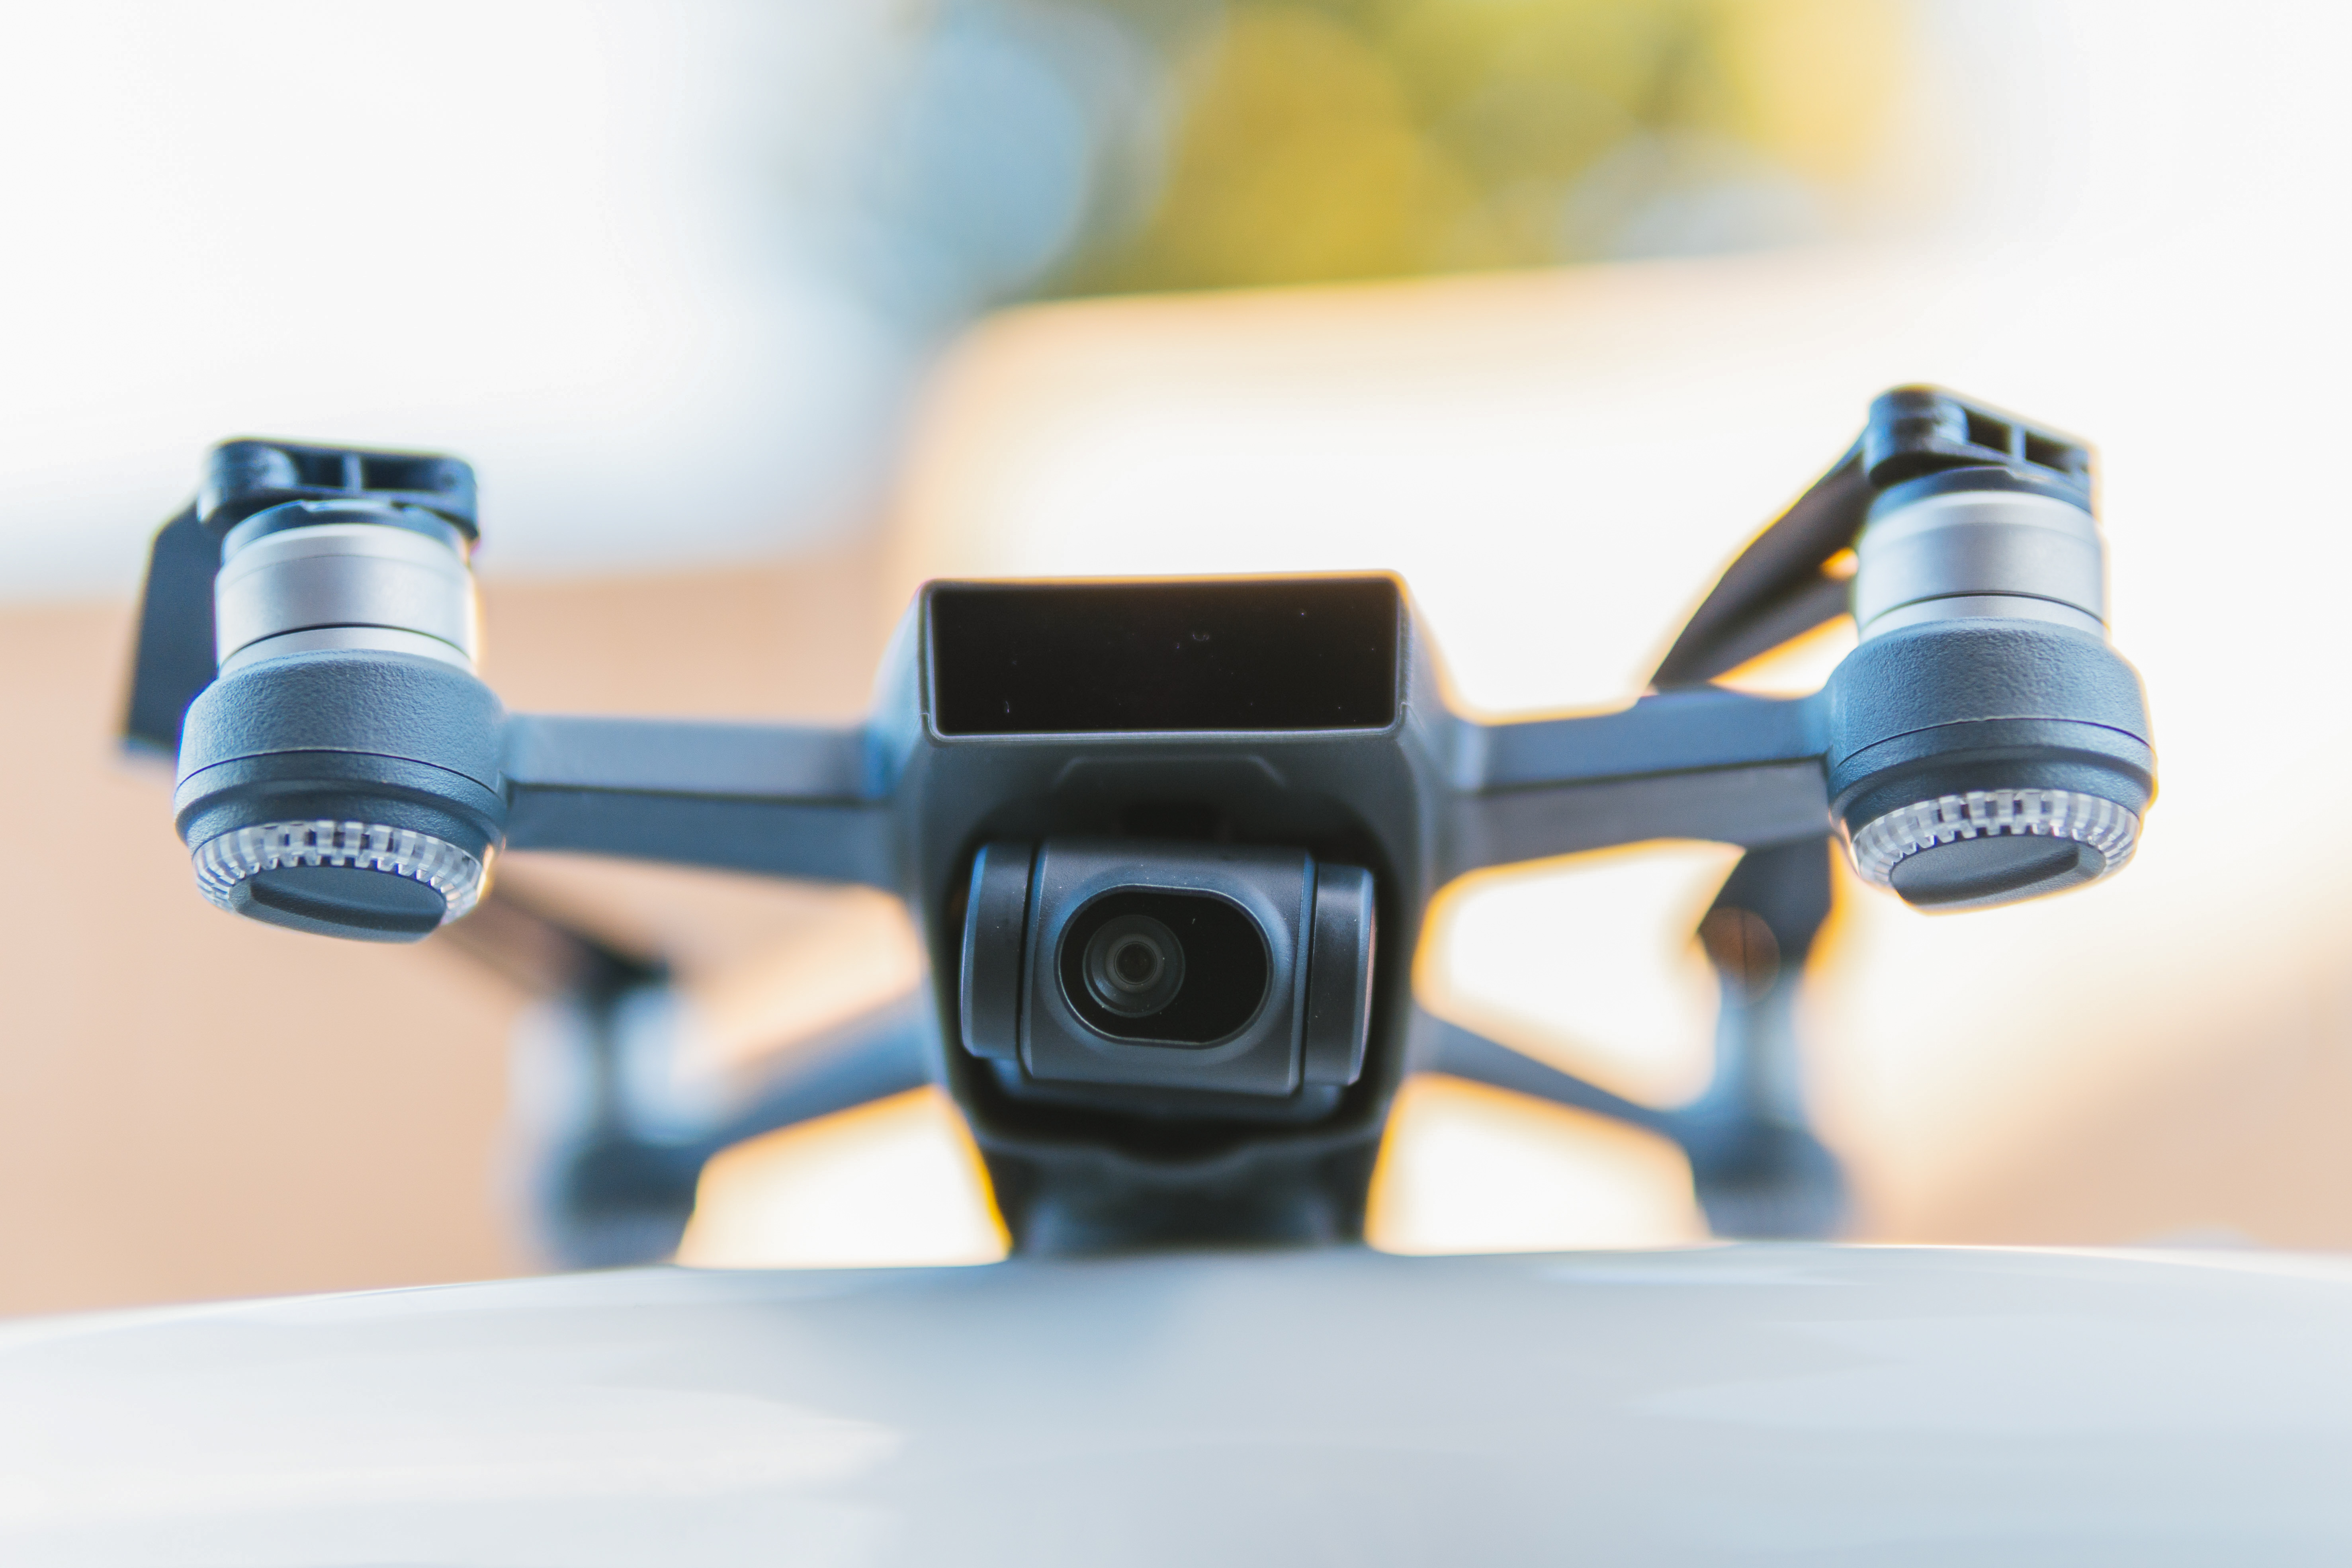 DJI Spark Review: Small but mighty: Digital Photography Review